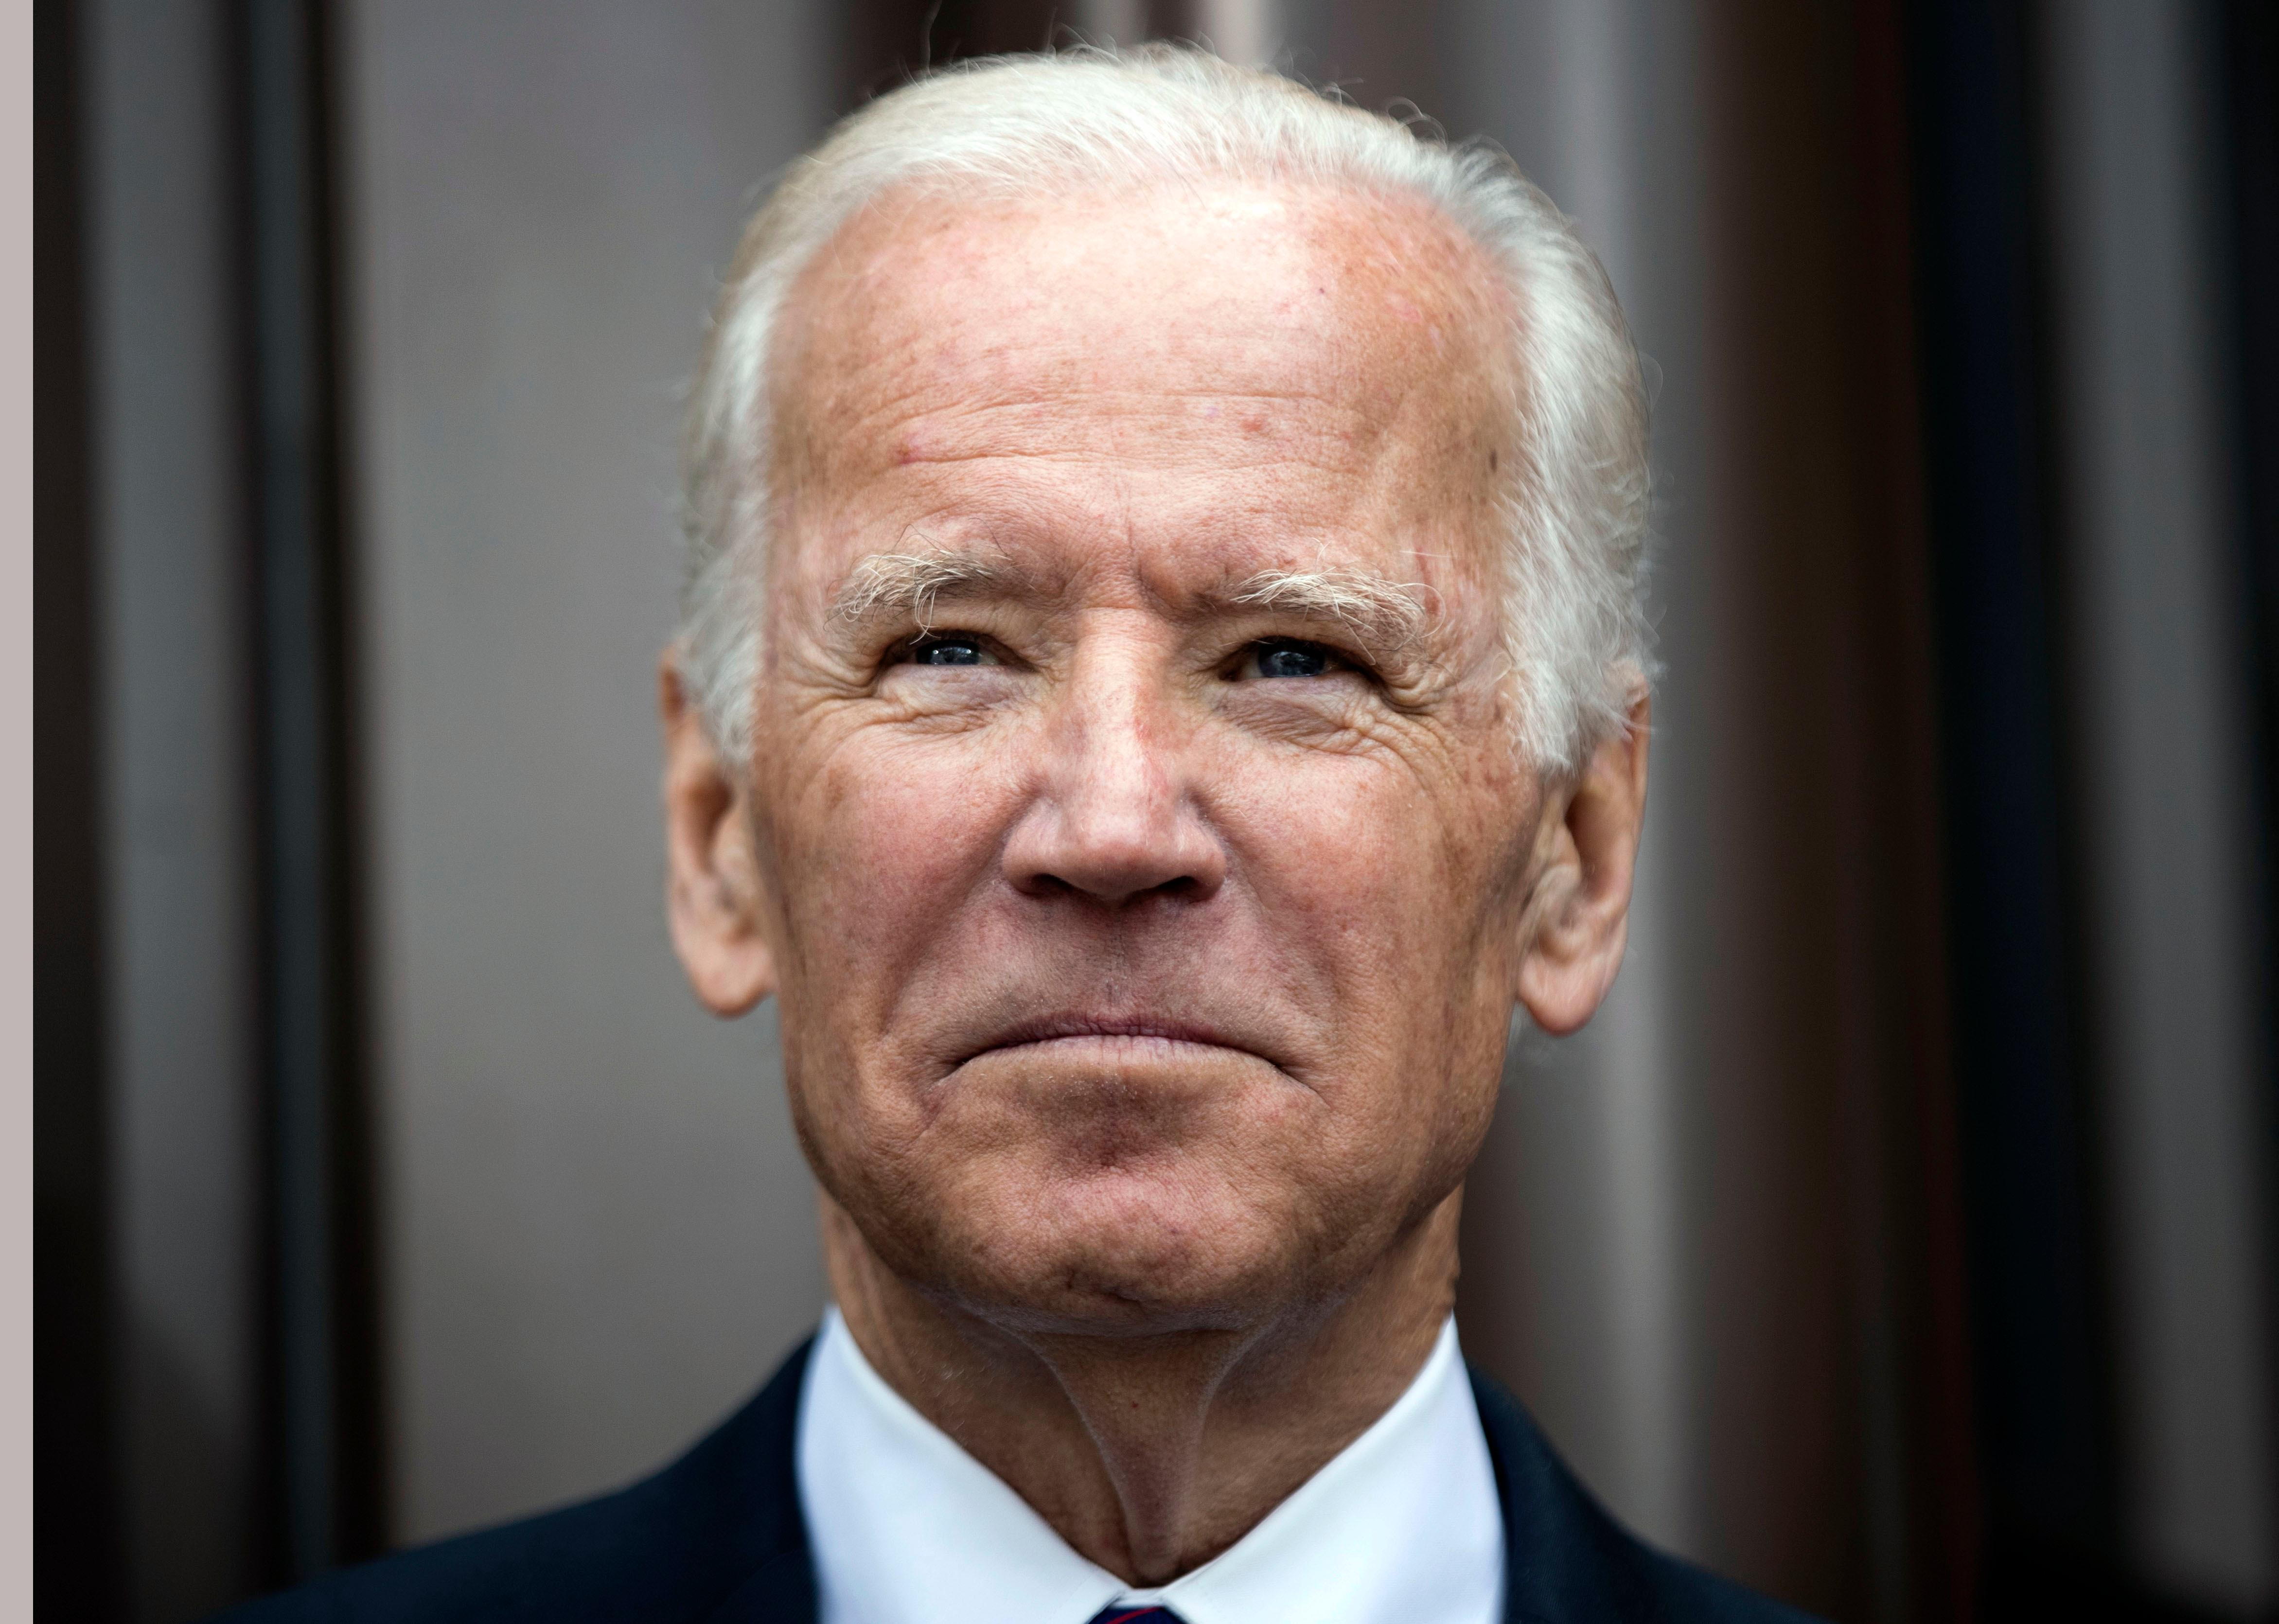 FILE- In this April 19, 2017, file photo, former Vice President Joe Biden attends the opening ceremony for Museum of the American Revolution in Philadelphia. Biden is slated to deliver the Class Day address at Harvard University on Wednesday, May 24. (AP Photo/Matt Rourke, File)